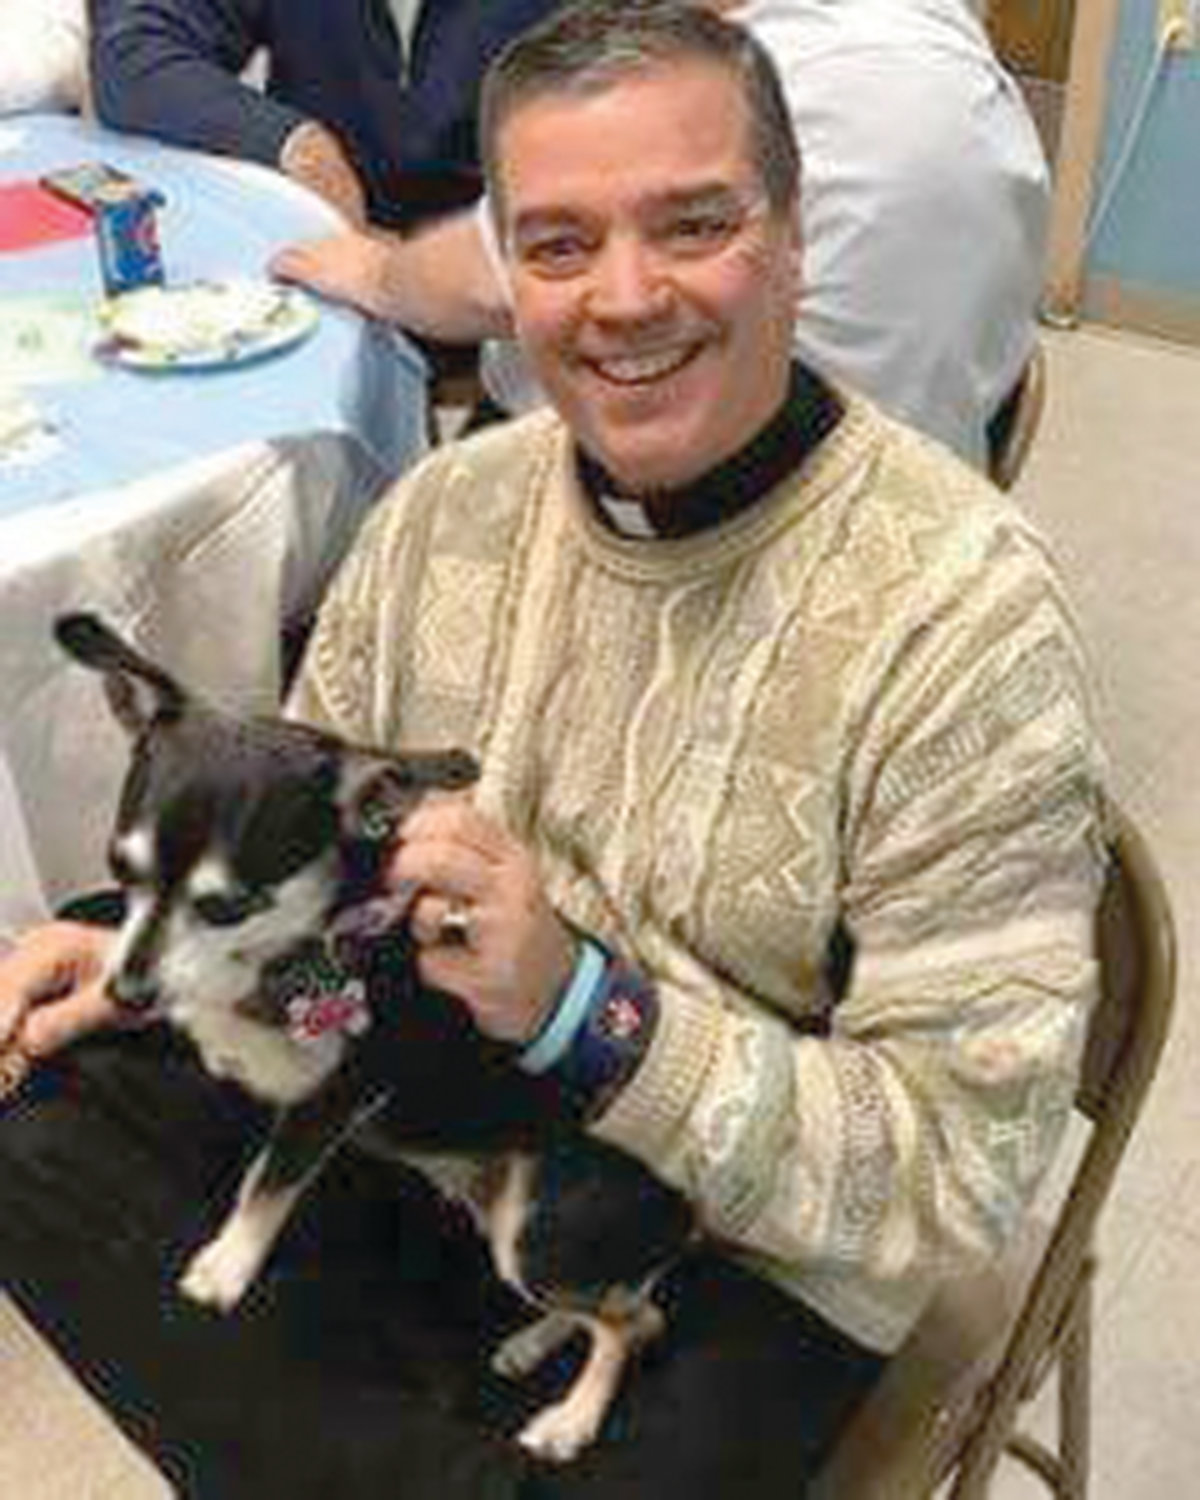 Father John Soares, the pastor at St. Thomas Church in Providence, smiles with his dog Dusty Rose. Father Soares has served St. Thomas Church and it's school community for the past 11 years.